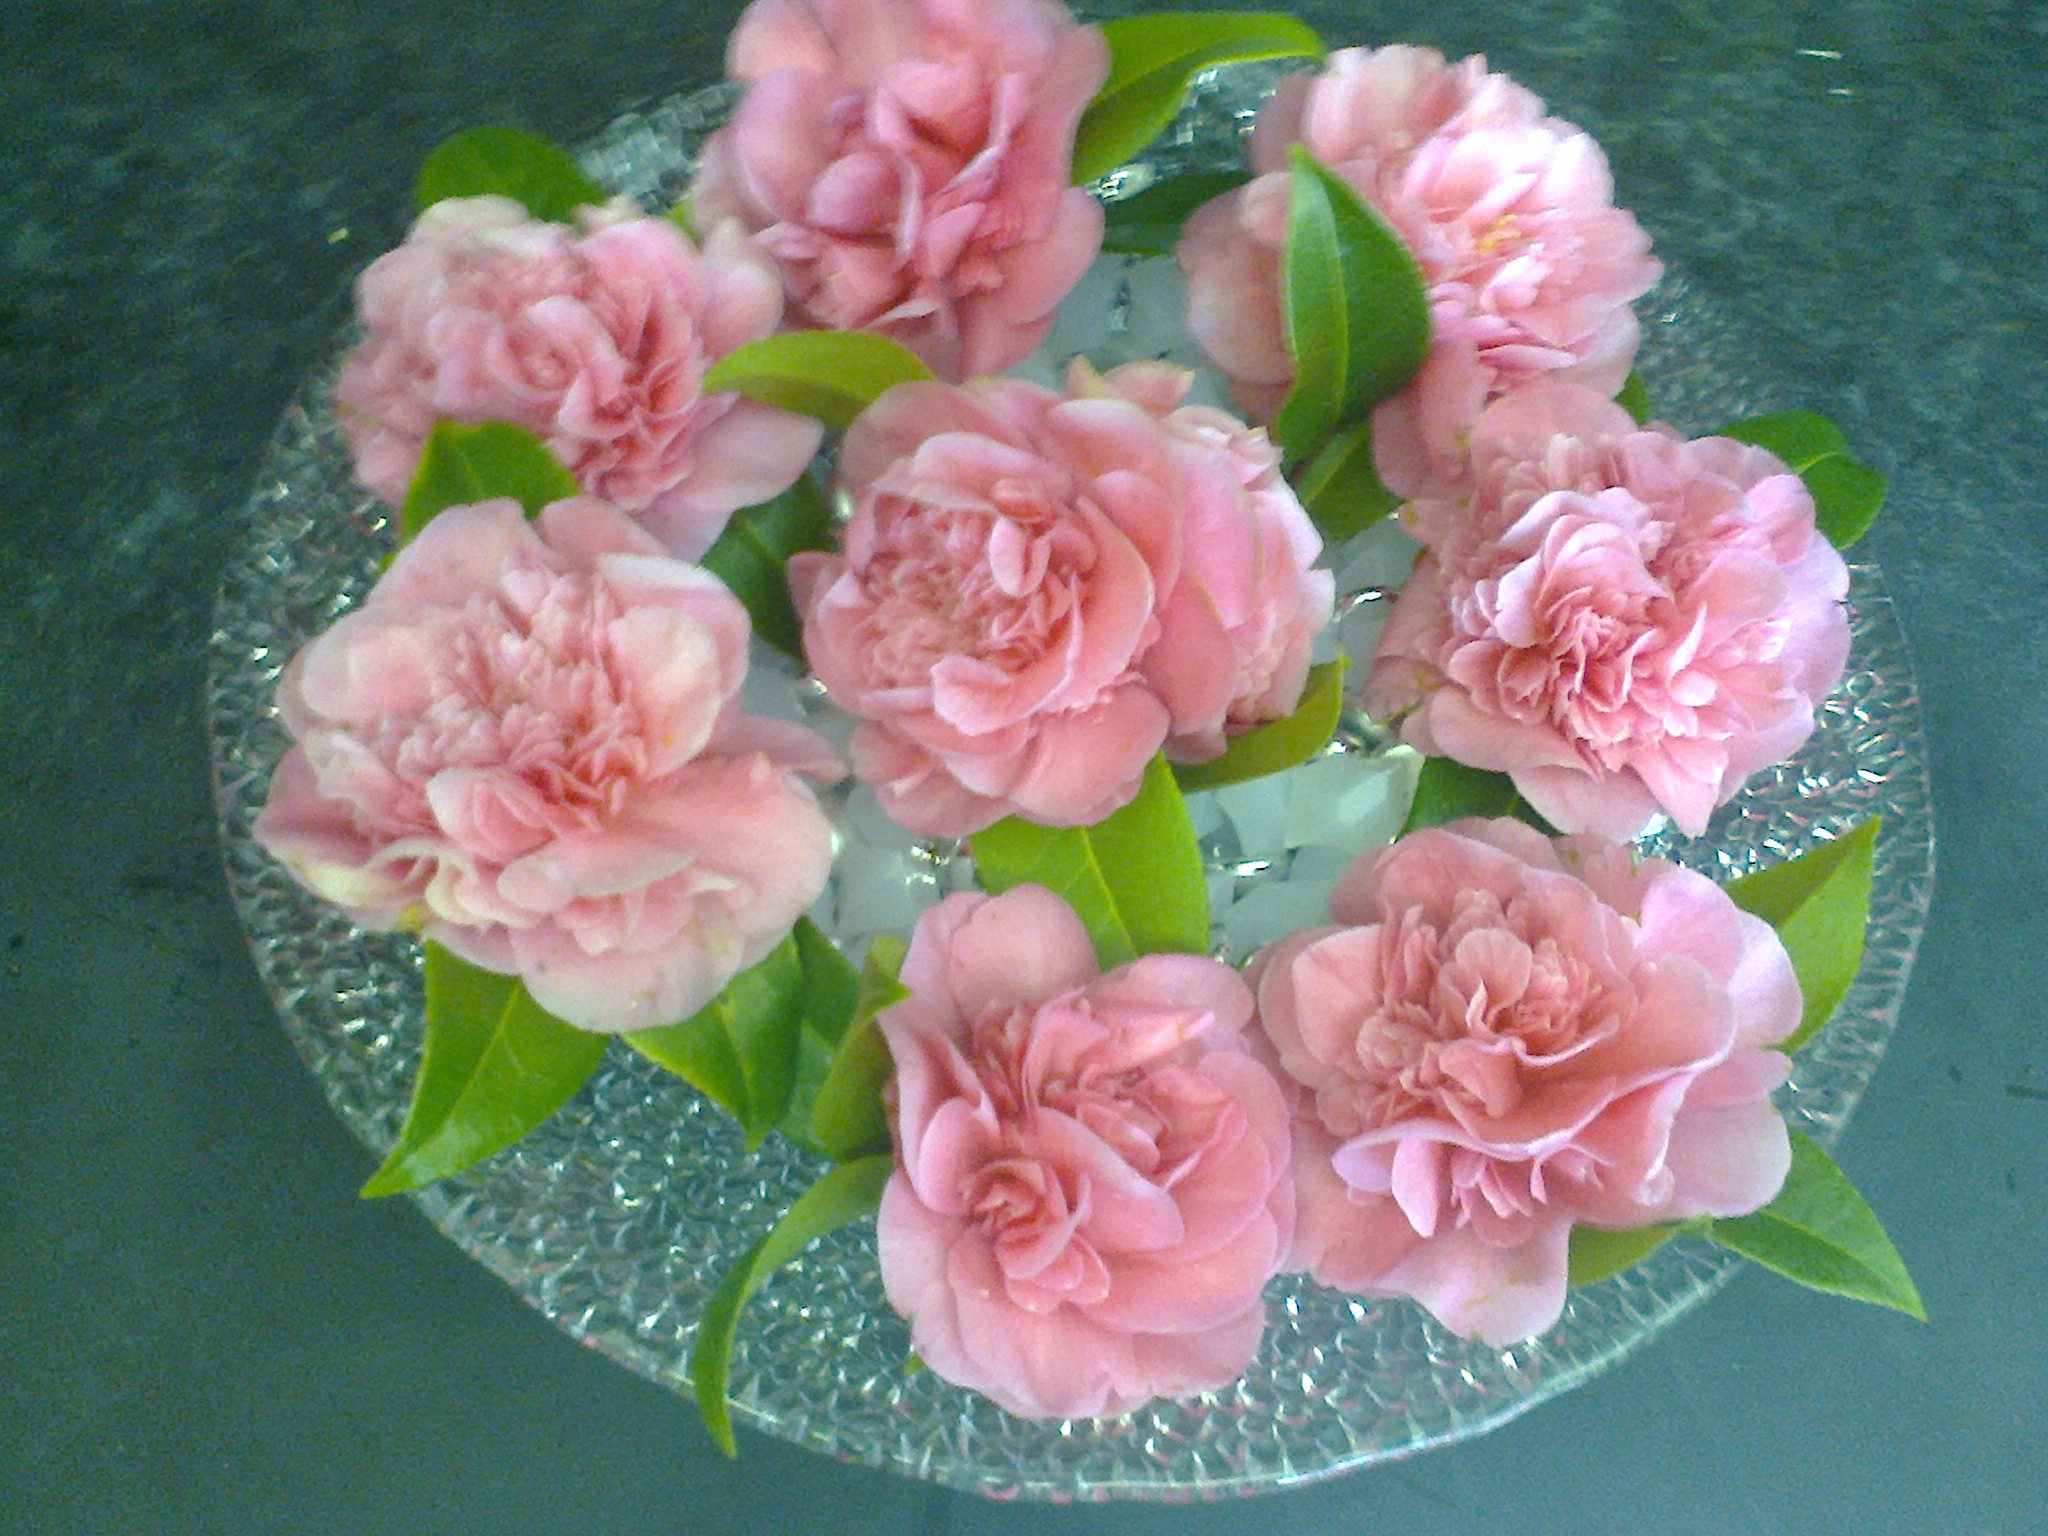 pink camelia blooms arranged in aqueous gel